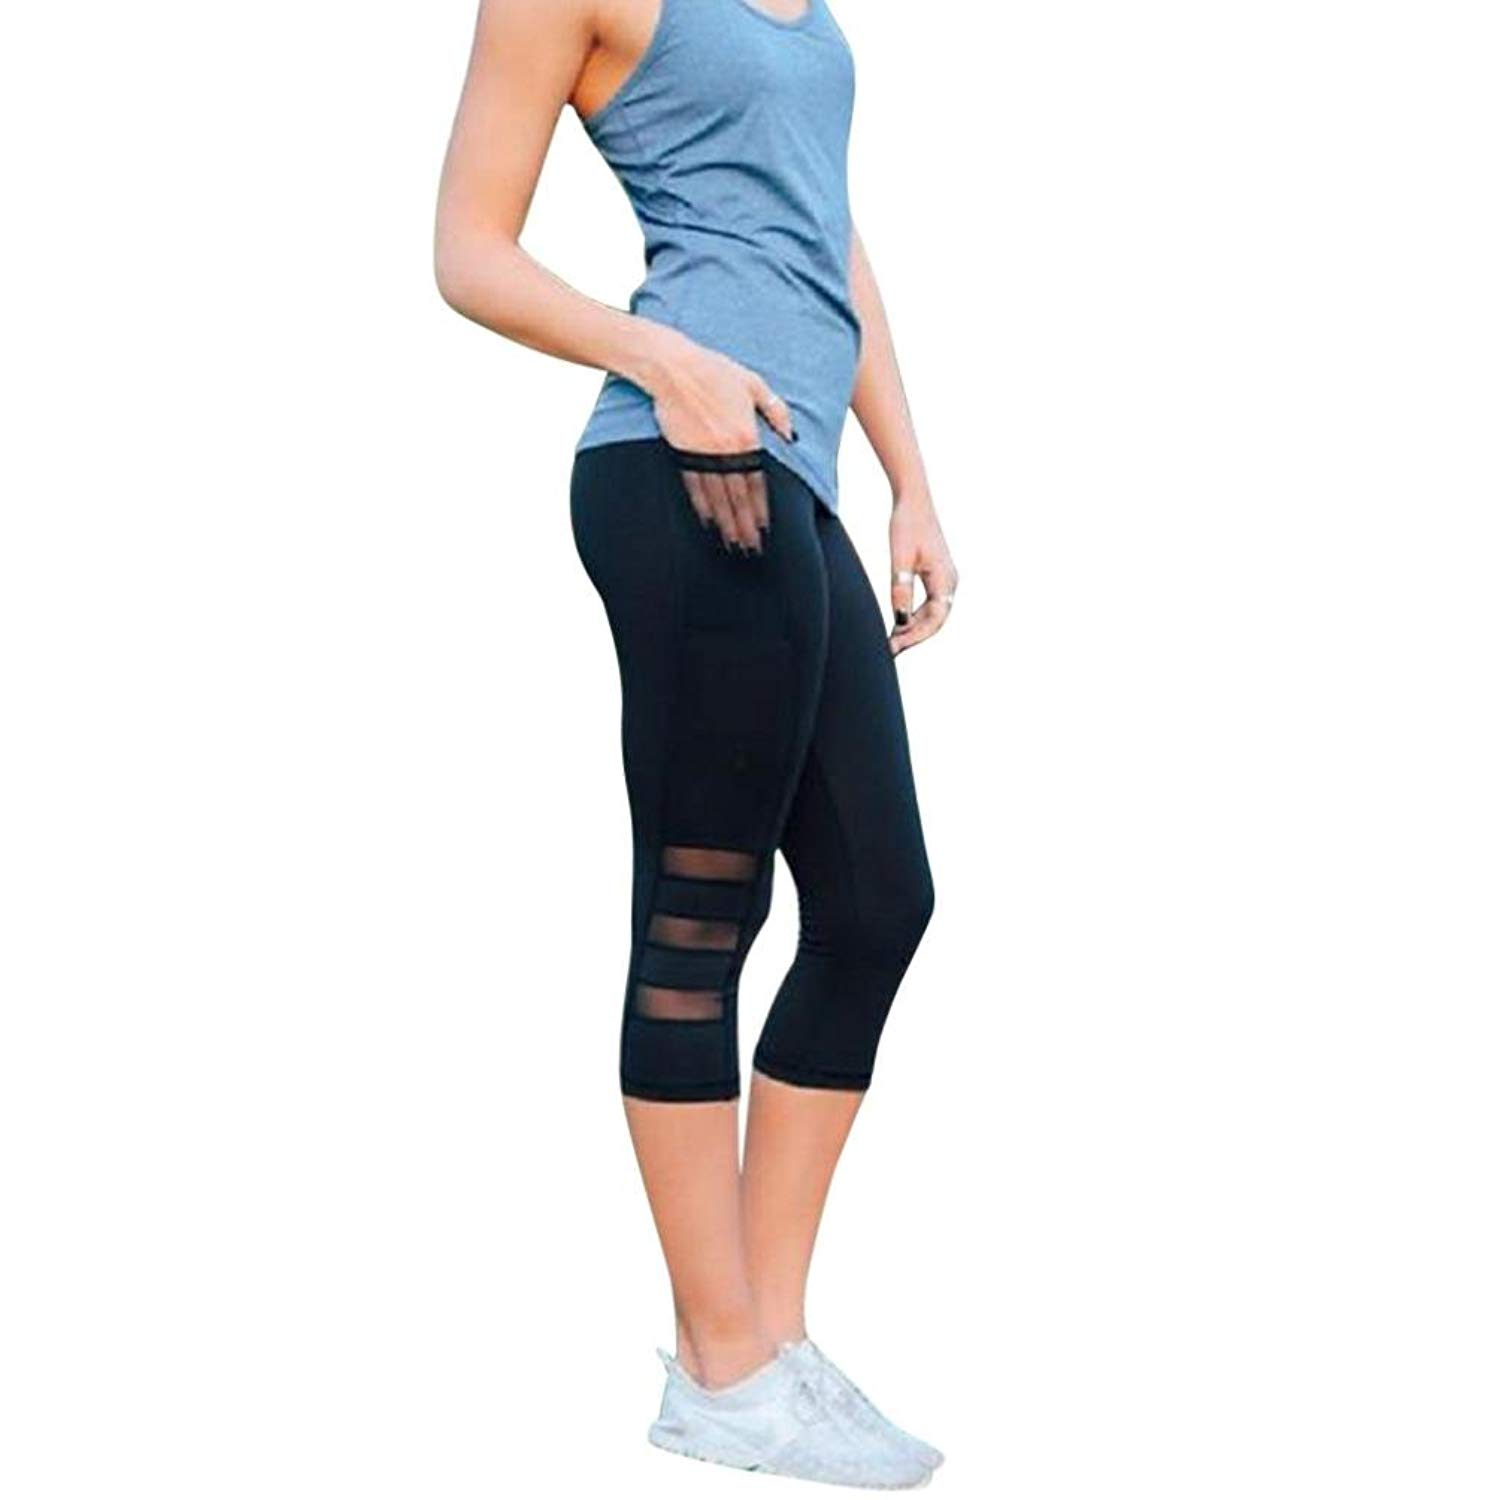 759d932c05 Mikkar Womens Sports Pants Skinny Leggings Patchwork Mesh Yoga Leggings  Fitness Sale